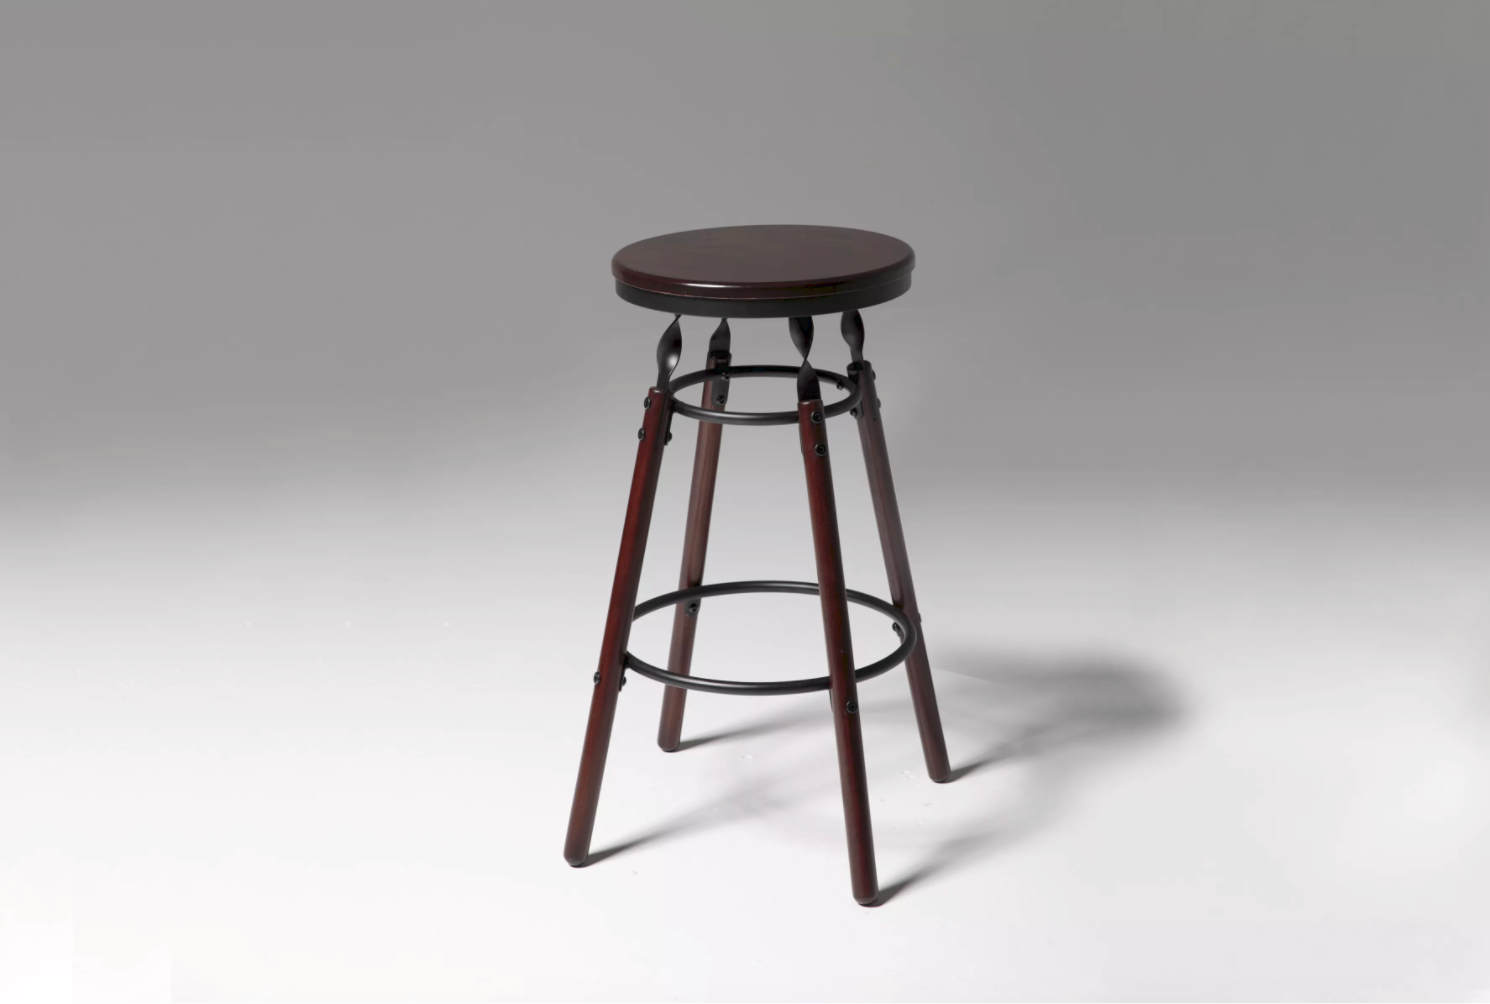 wood of black stools for leather back swivel brushed height stool ideas iron chairs pub cool wooden me high inch seat chair barstool large decmode near steel size low backs antique island sale kitchen metal with bar counter round design hayneedle that furniture inspiring wrought